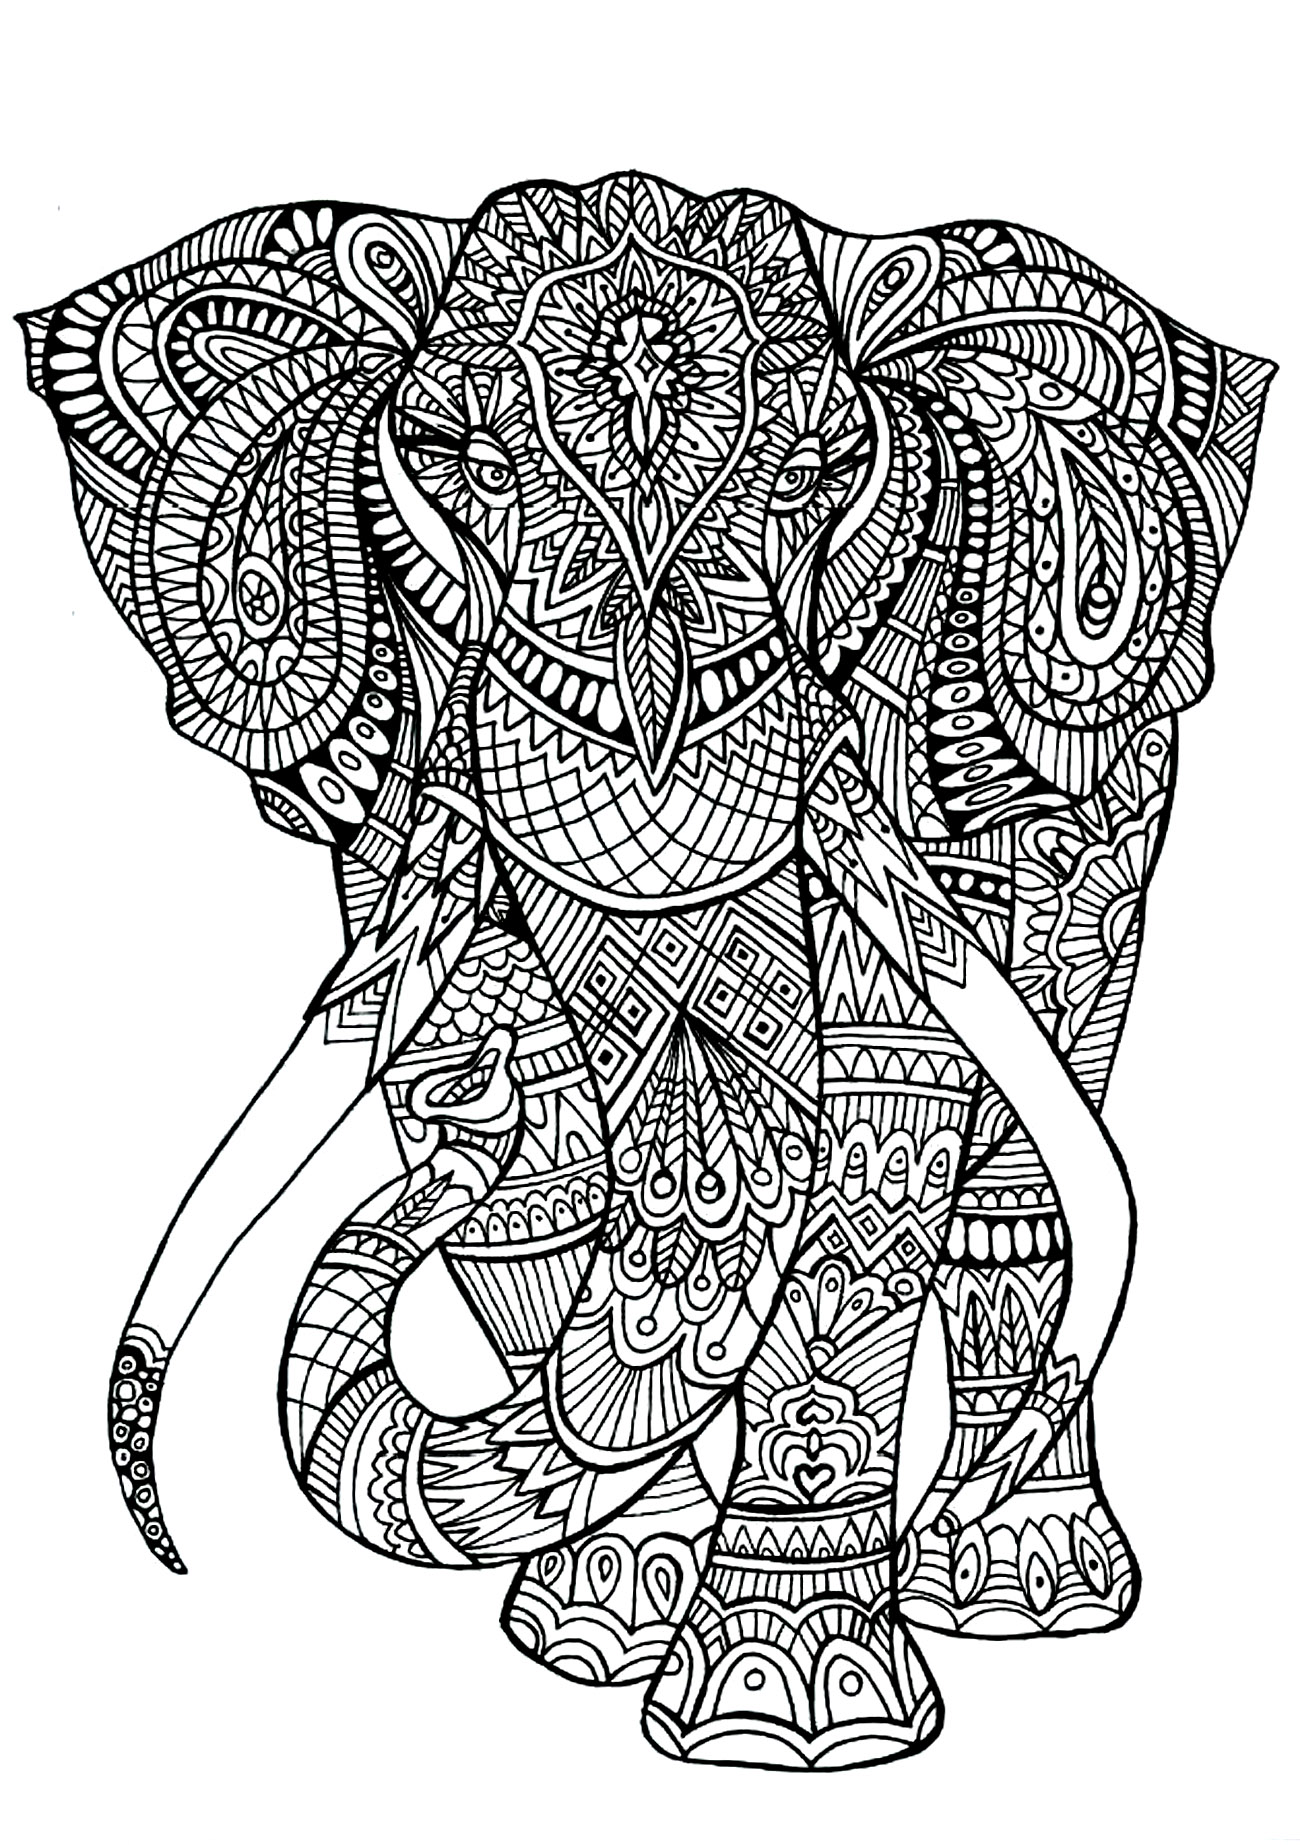 A Big Elephant Full Of Details